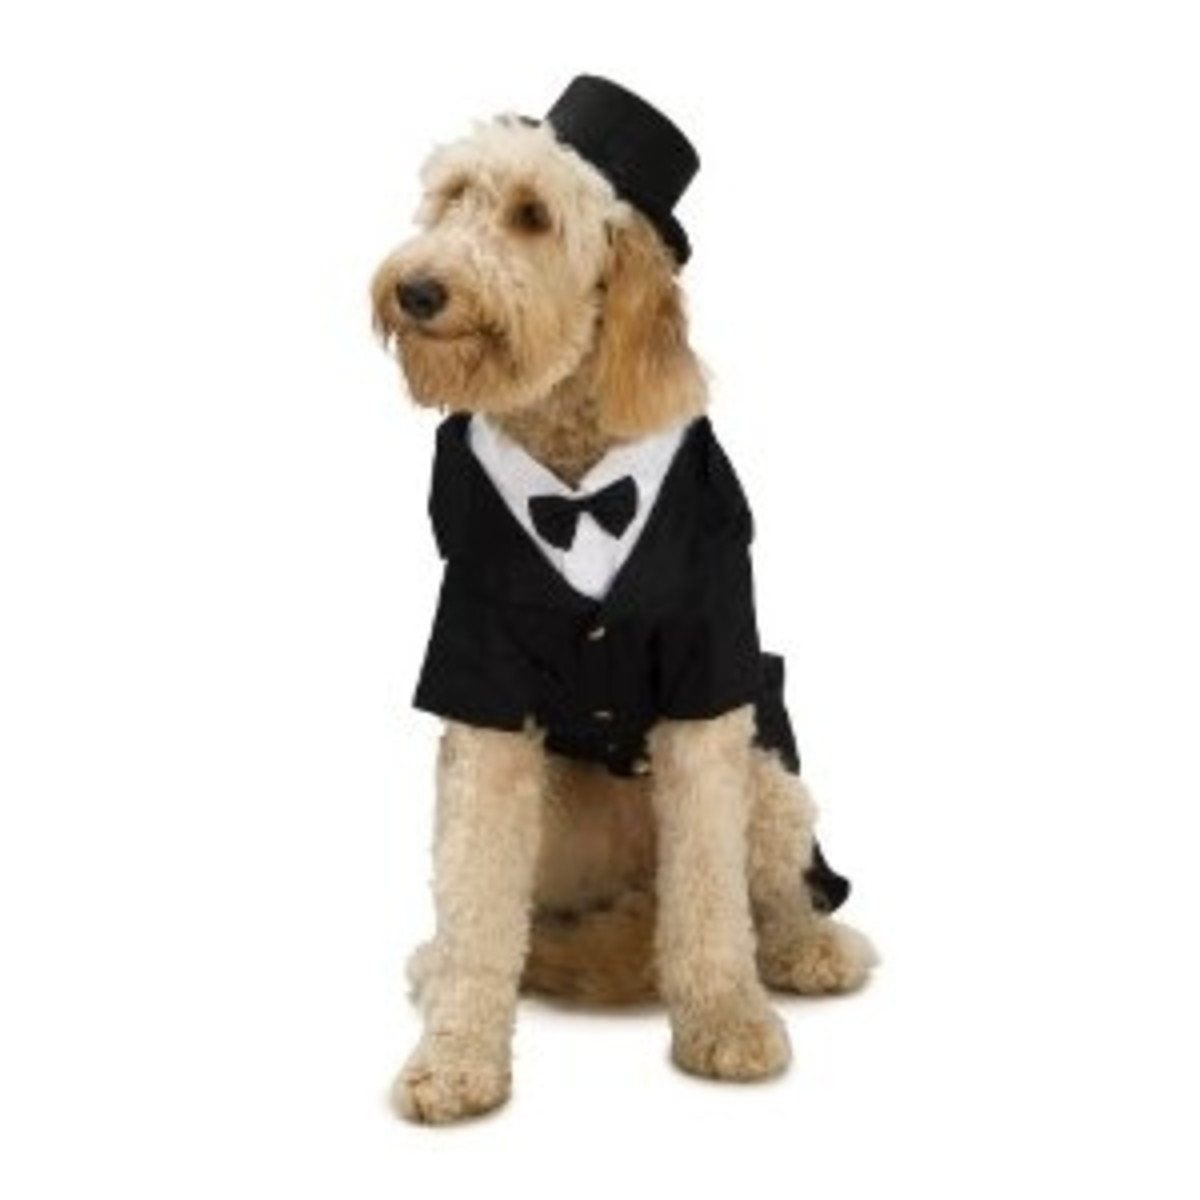 Dapper Dog Tuxedo X-Large Pet Costume